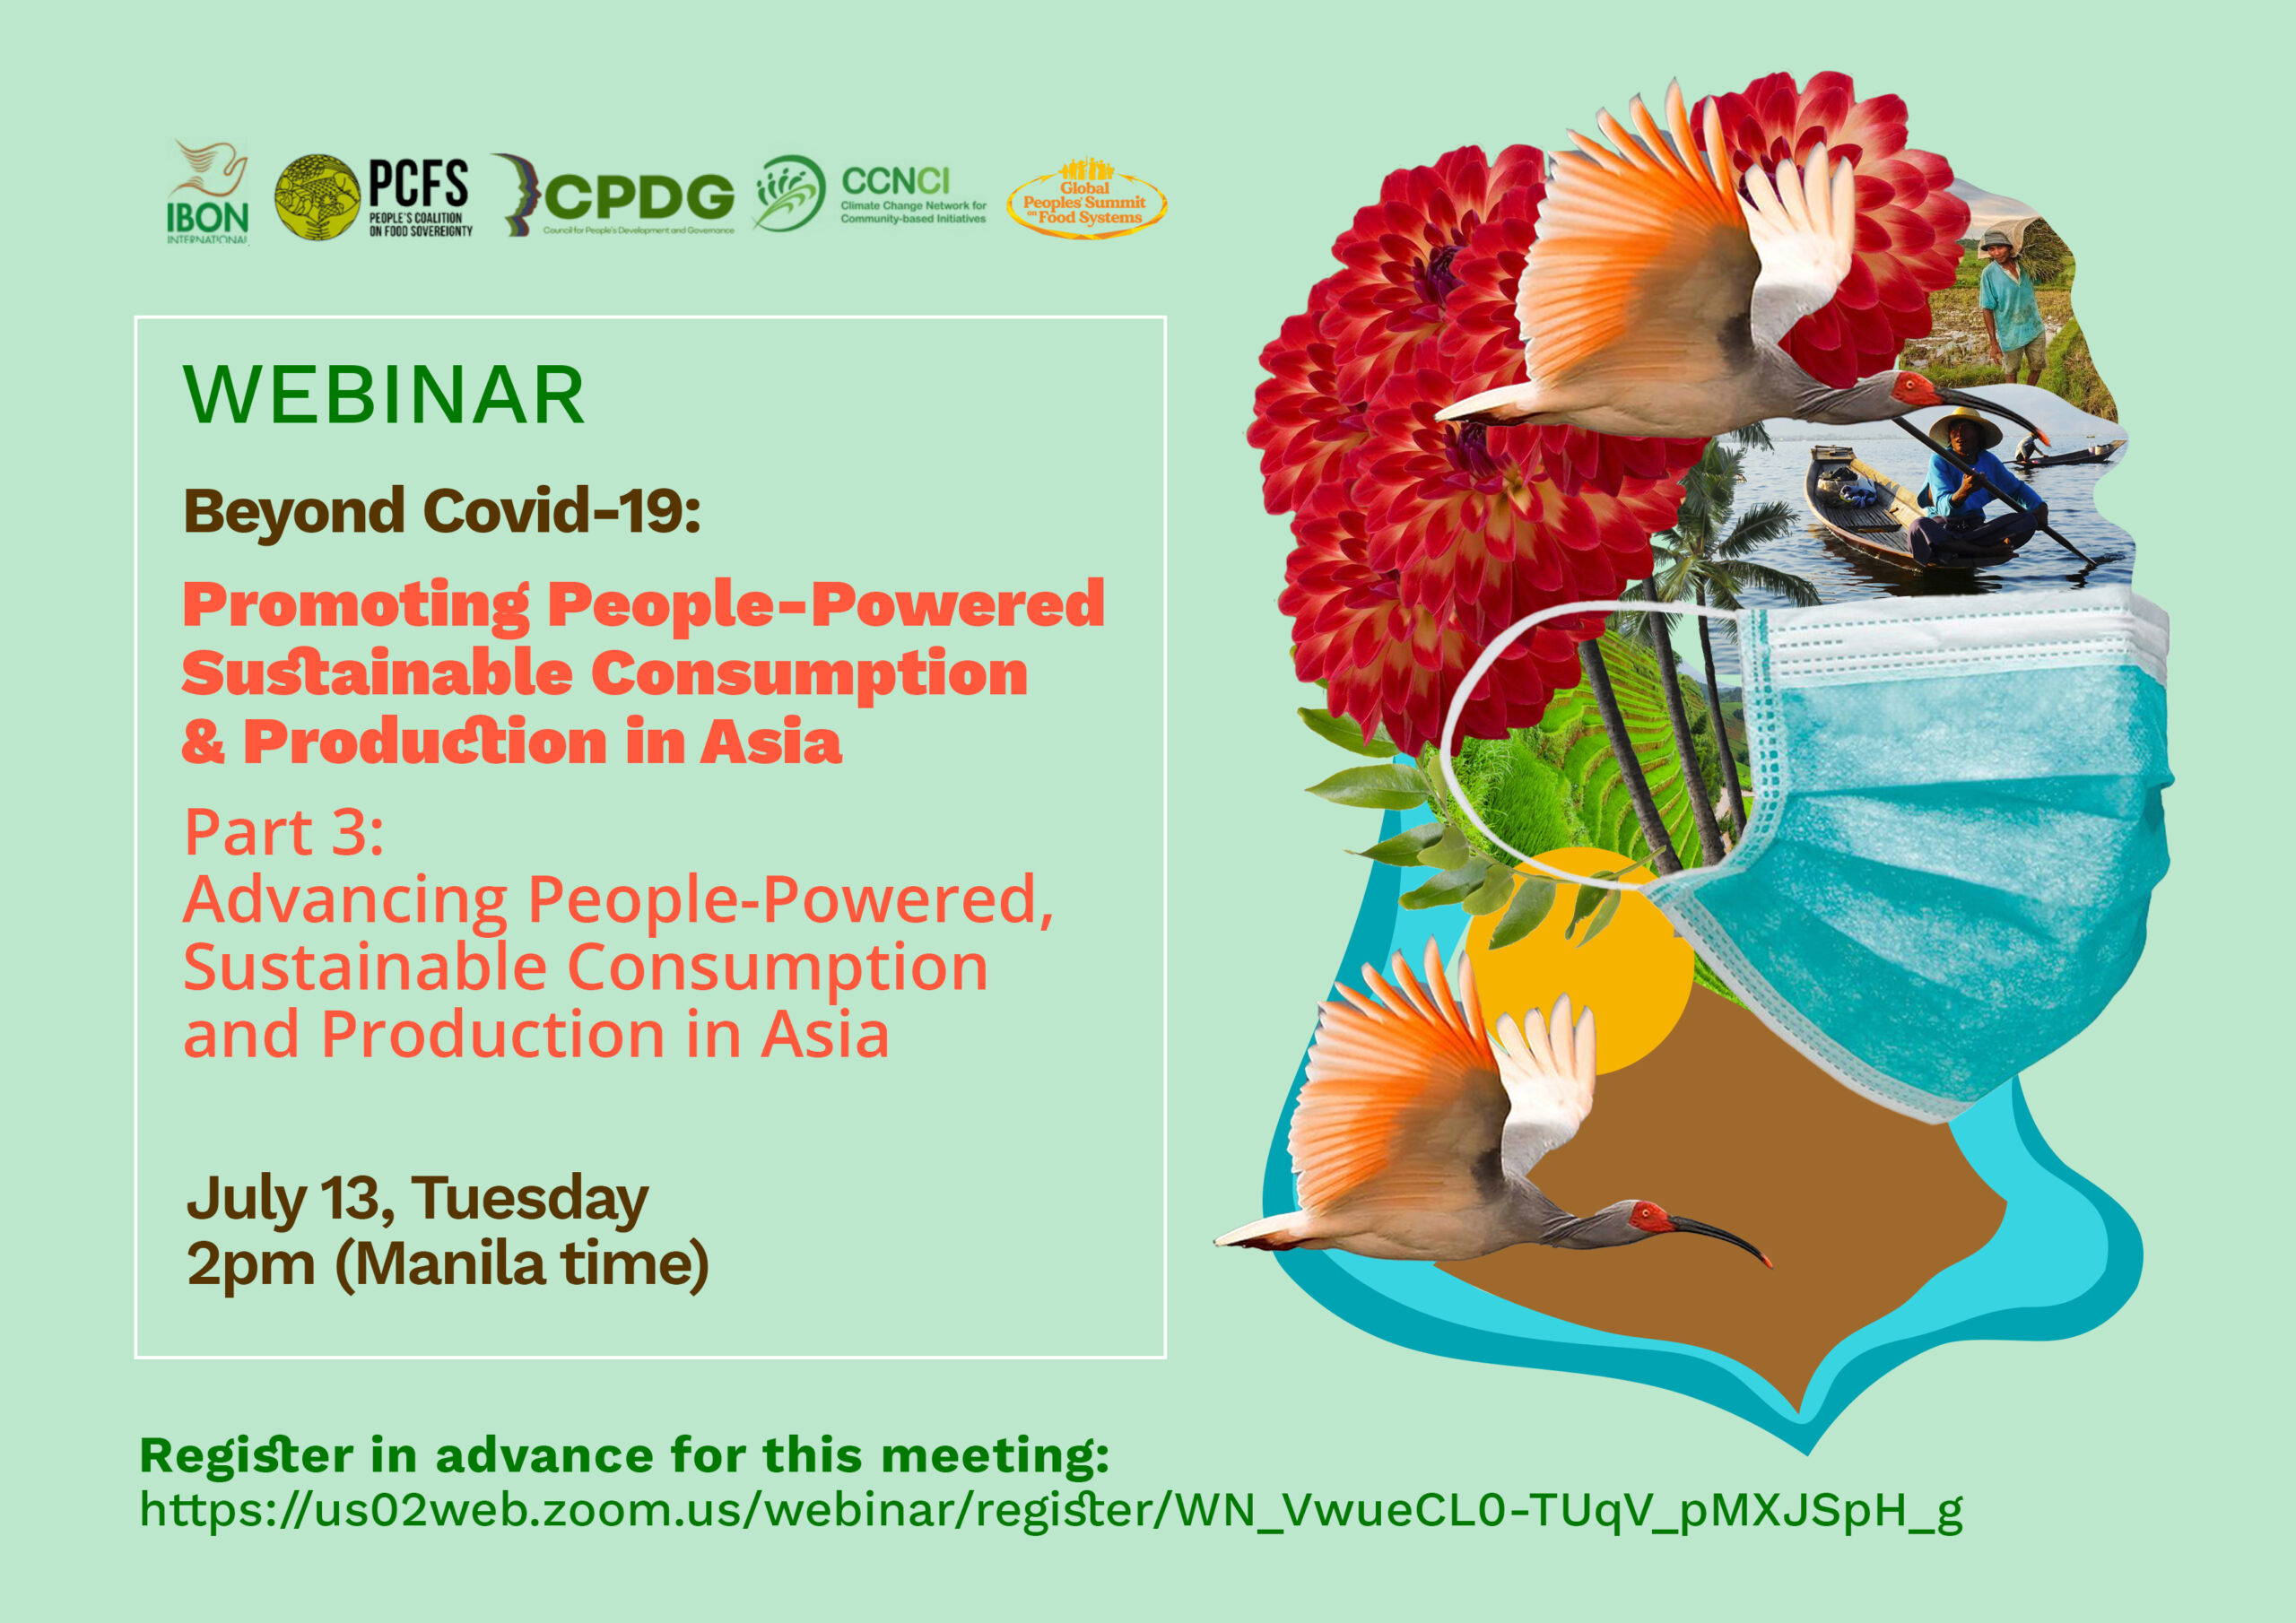 Webinar Series on Sustainable Consumption and Production in Asia and Africa